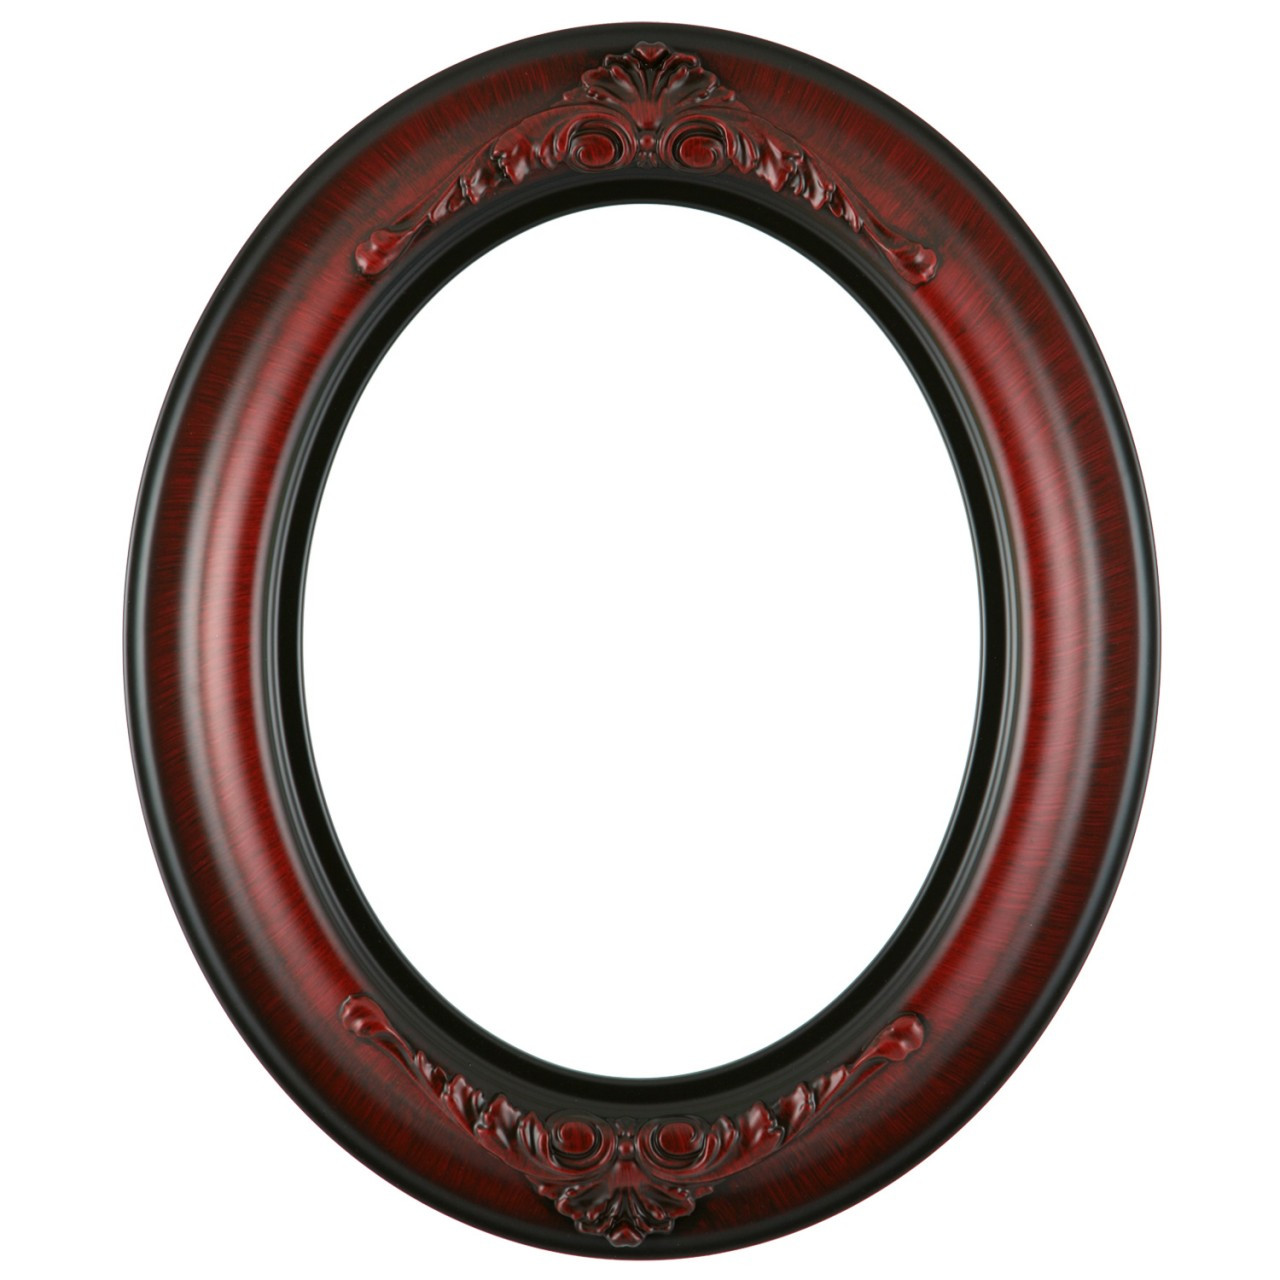 Oval Frame In Vintage Cherry Finish Antique Stripping On